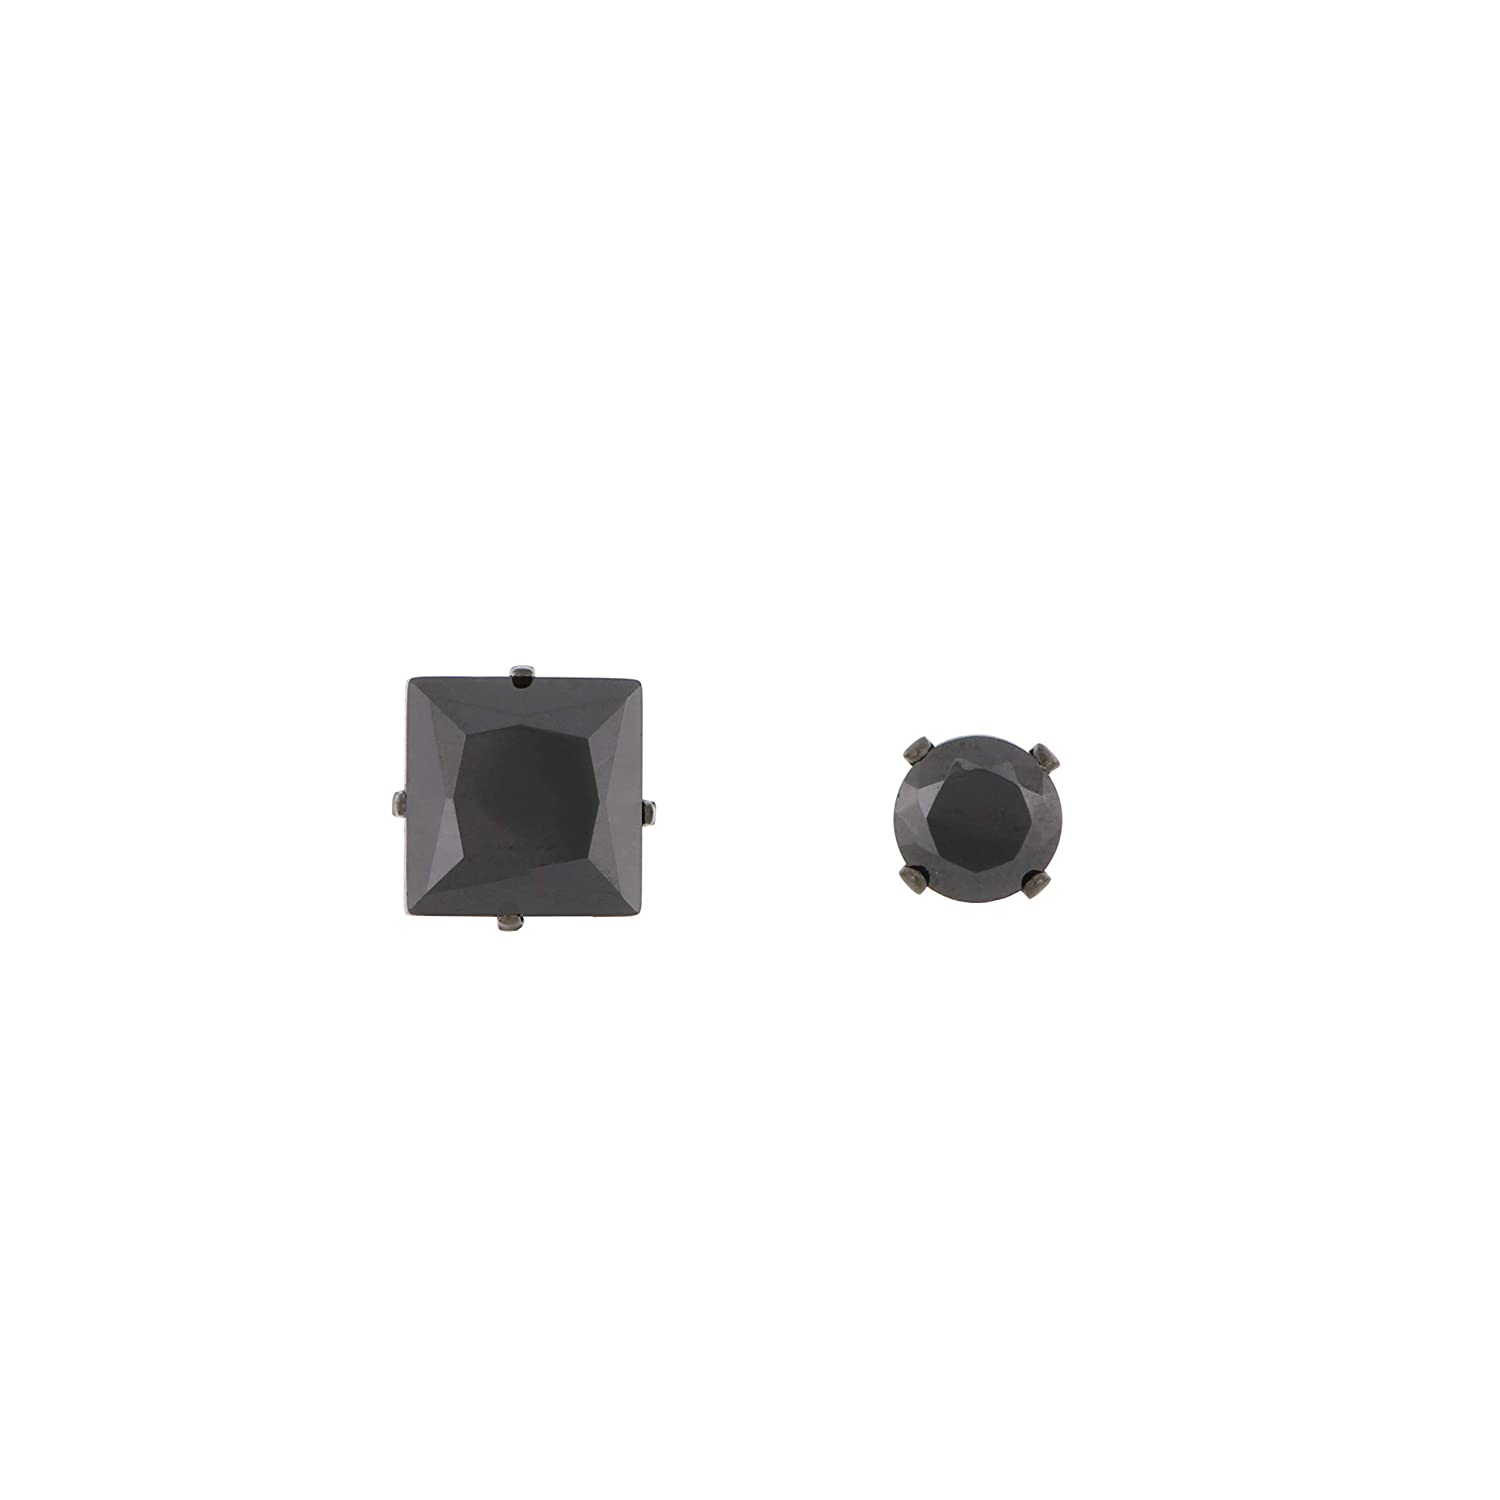 Arrow Jewelry Stainless Steel Polished Mismatched Black CZ Square and Round Black IP-Plated Stud Post Earrings